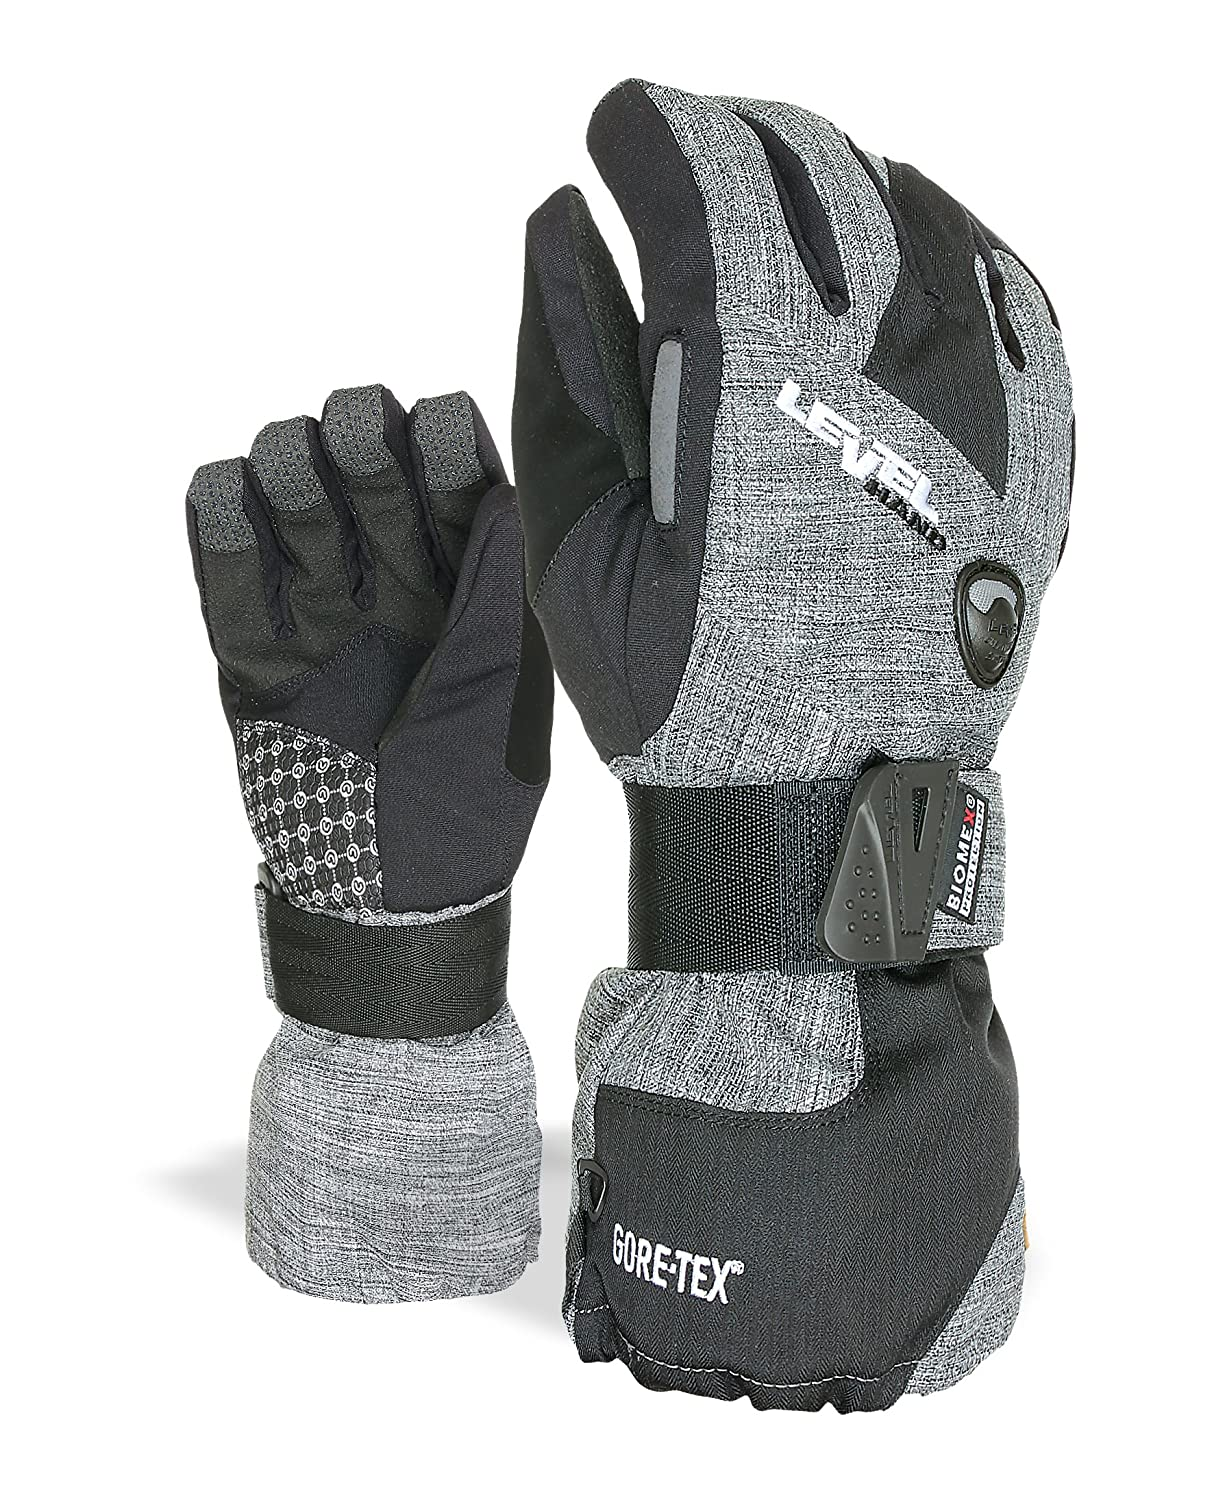 Level Half Pipe Men's Goretex Handschuh